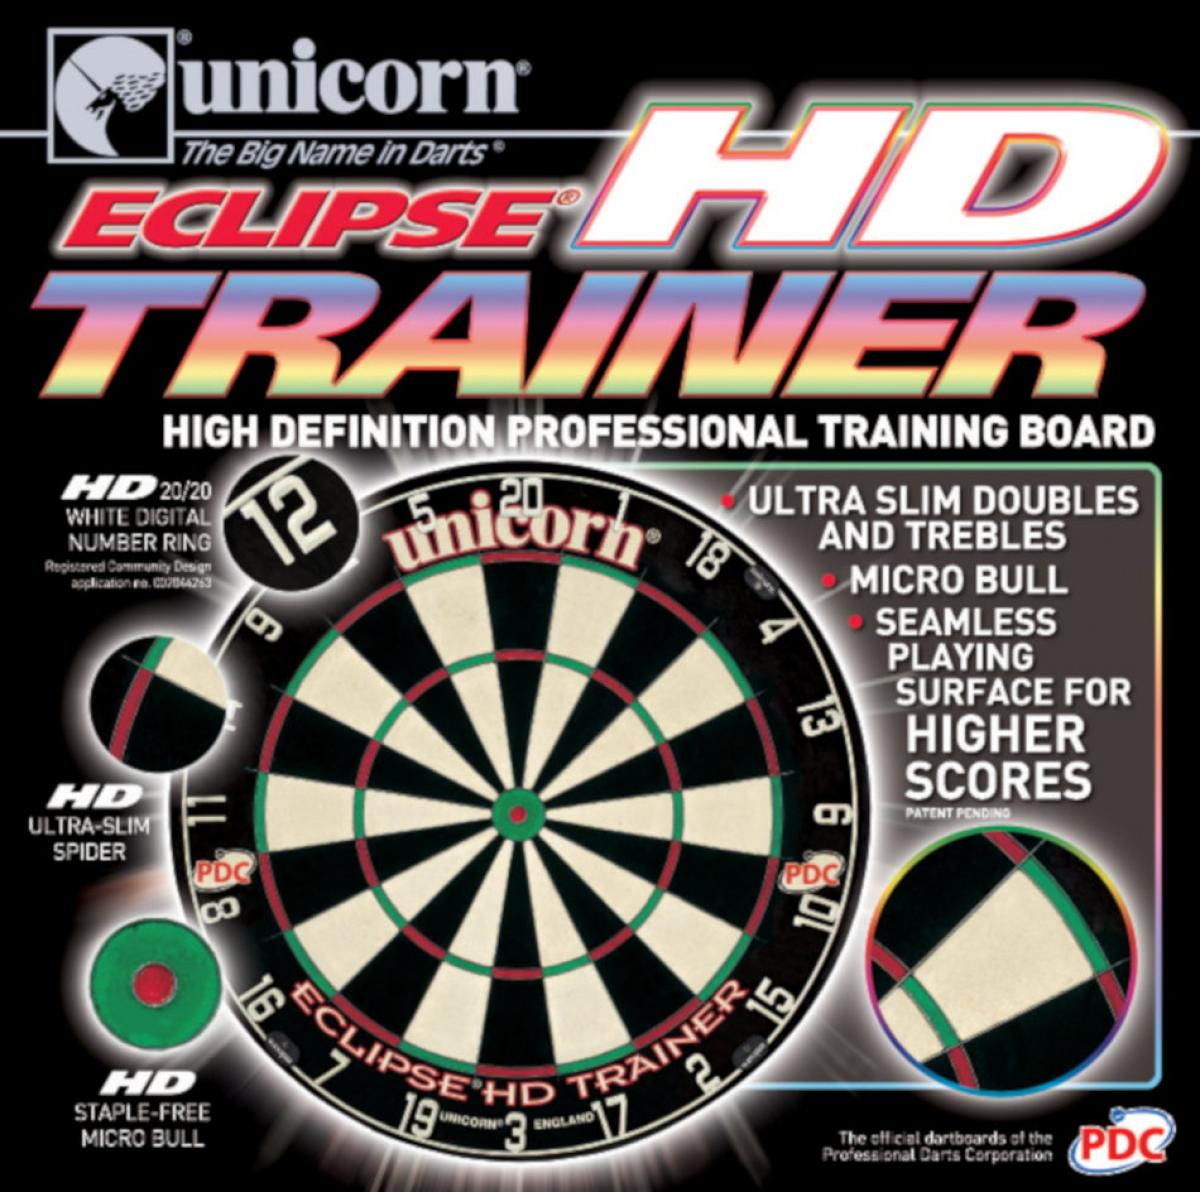 Unicorn Eclipse HD Training Board (Box)